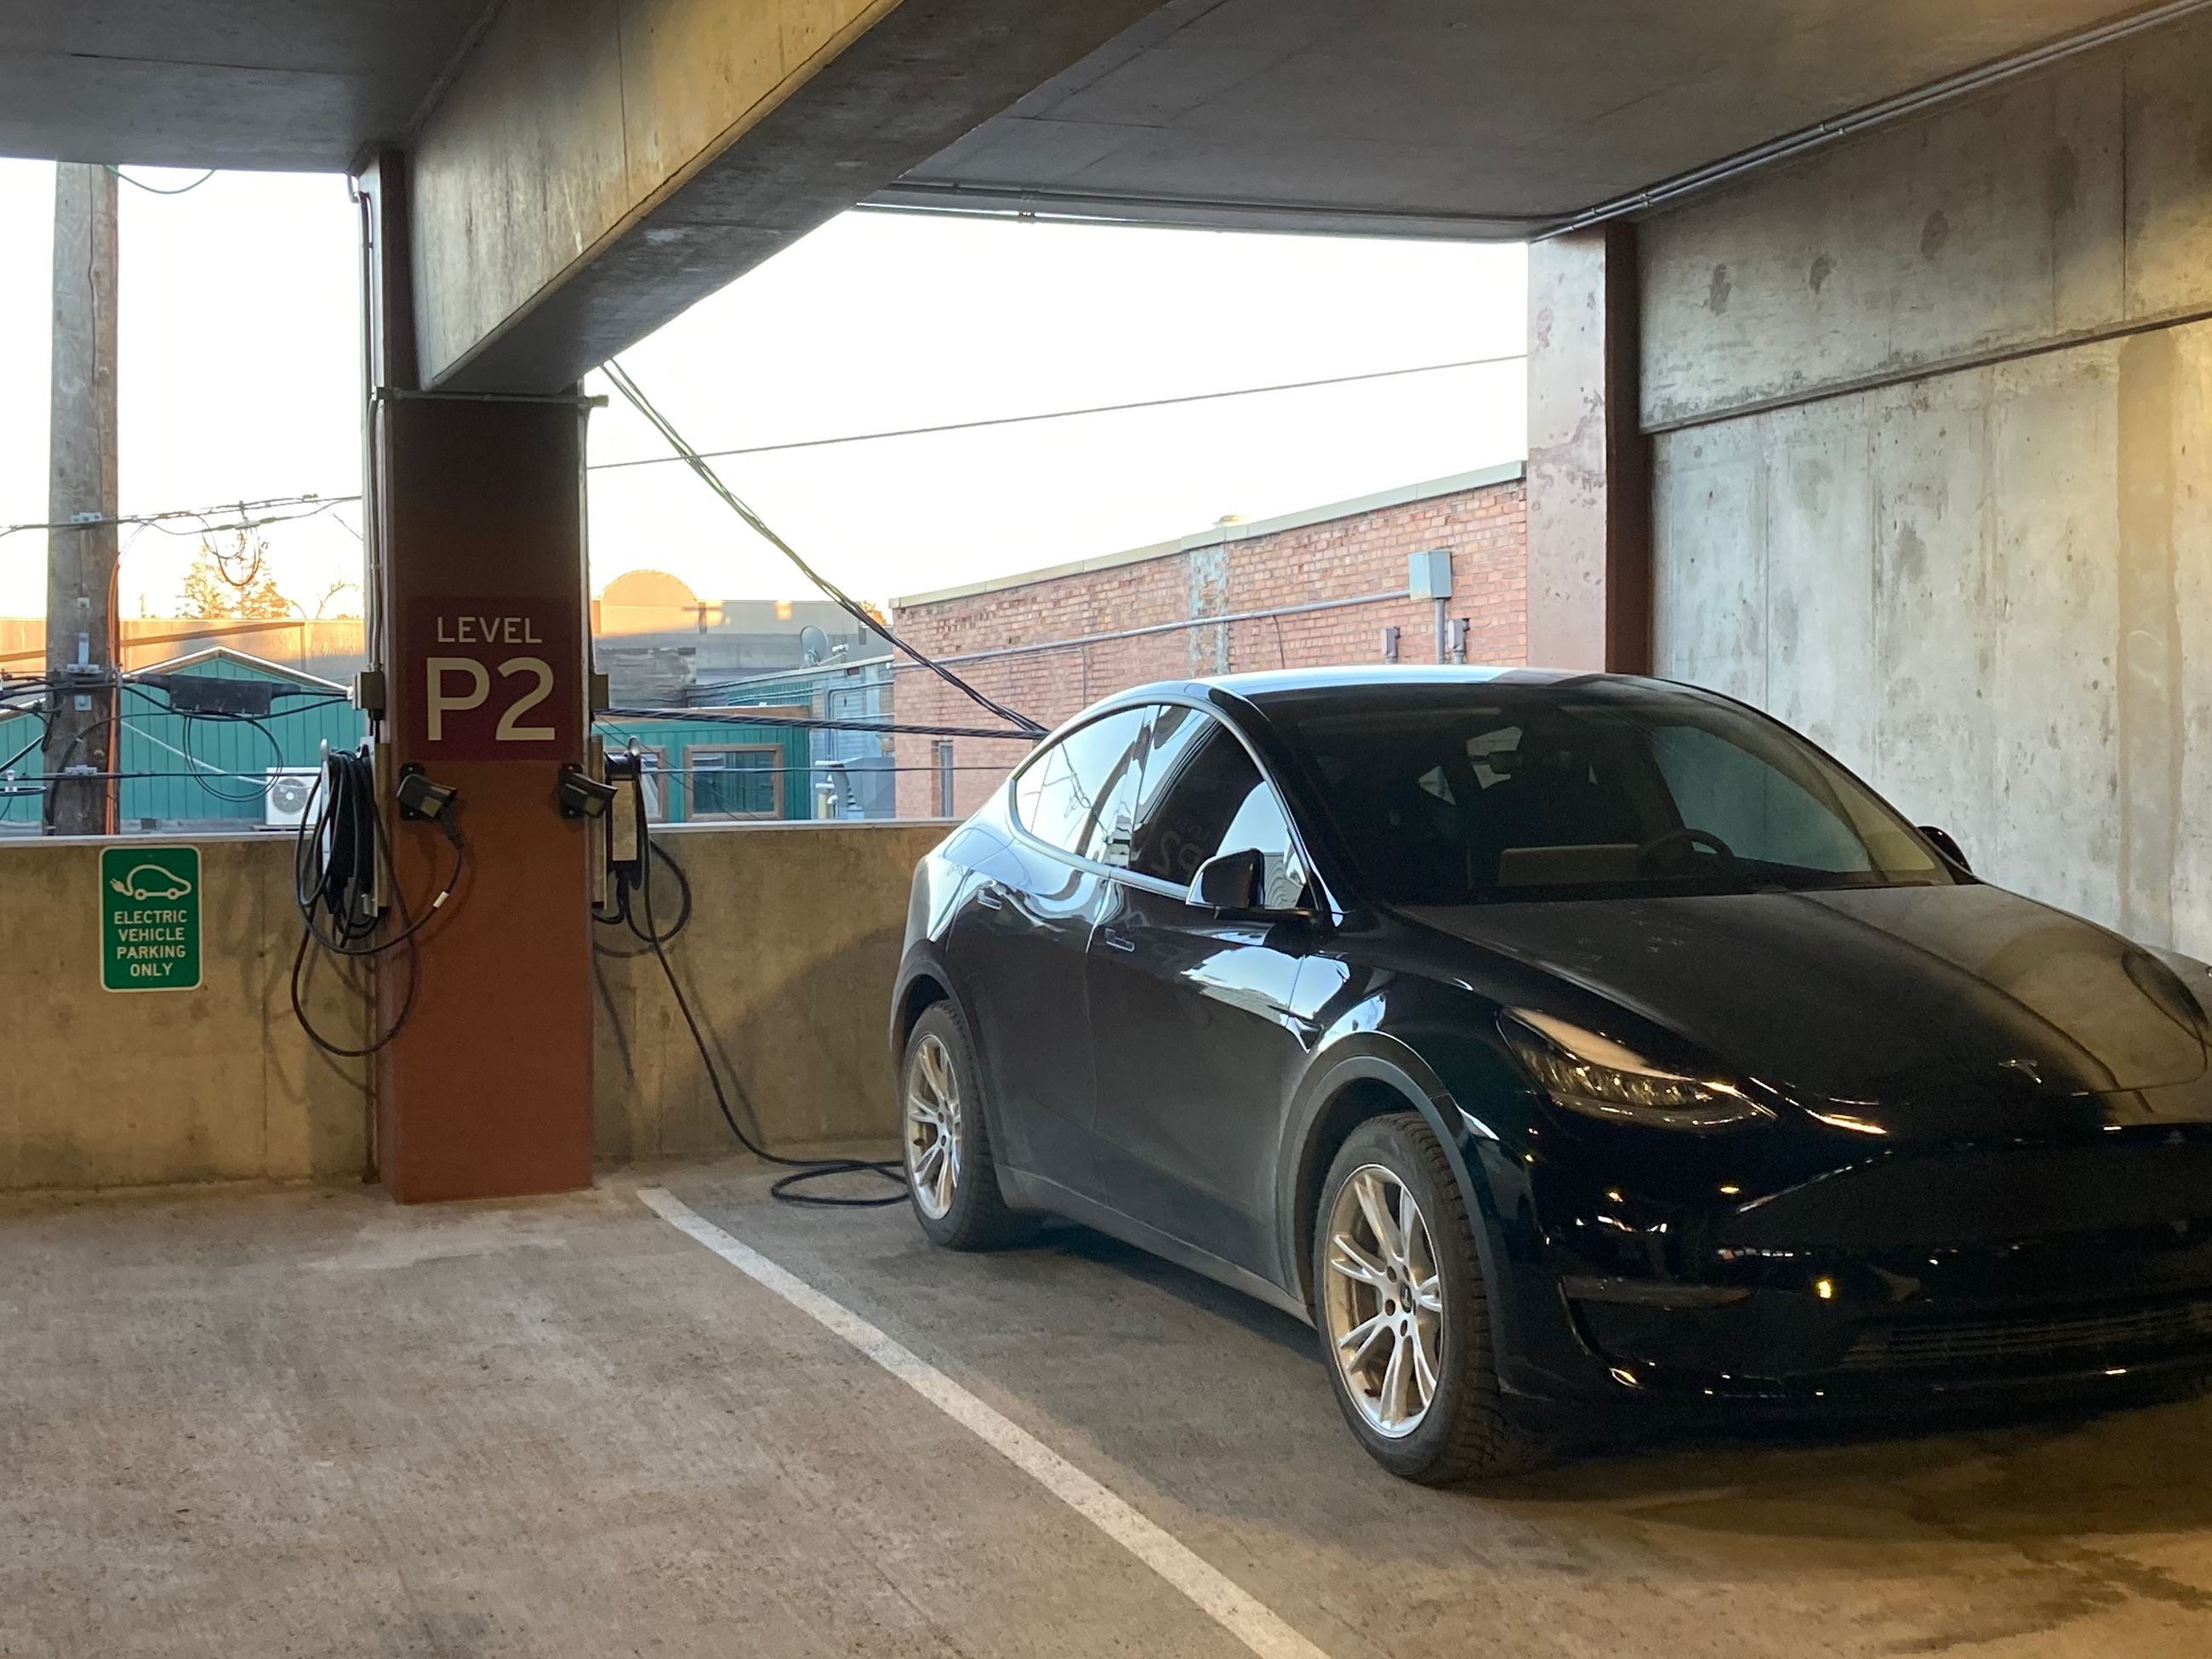 EV Charging Station In Use